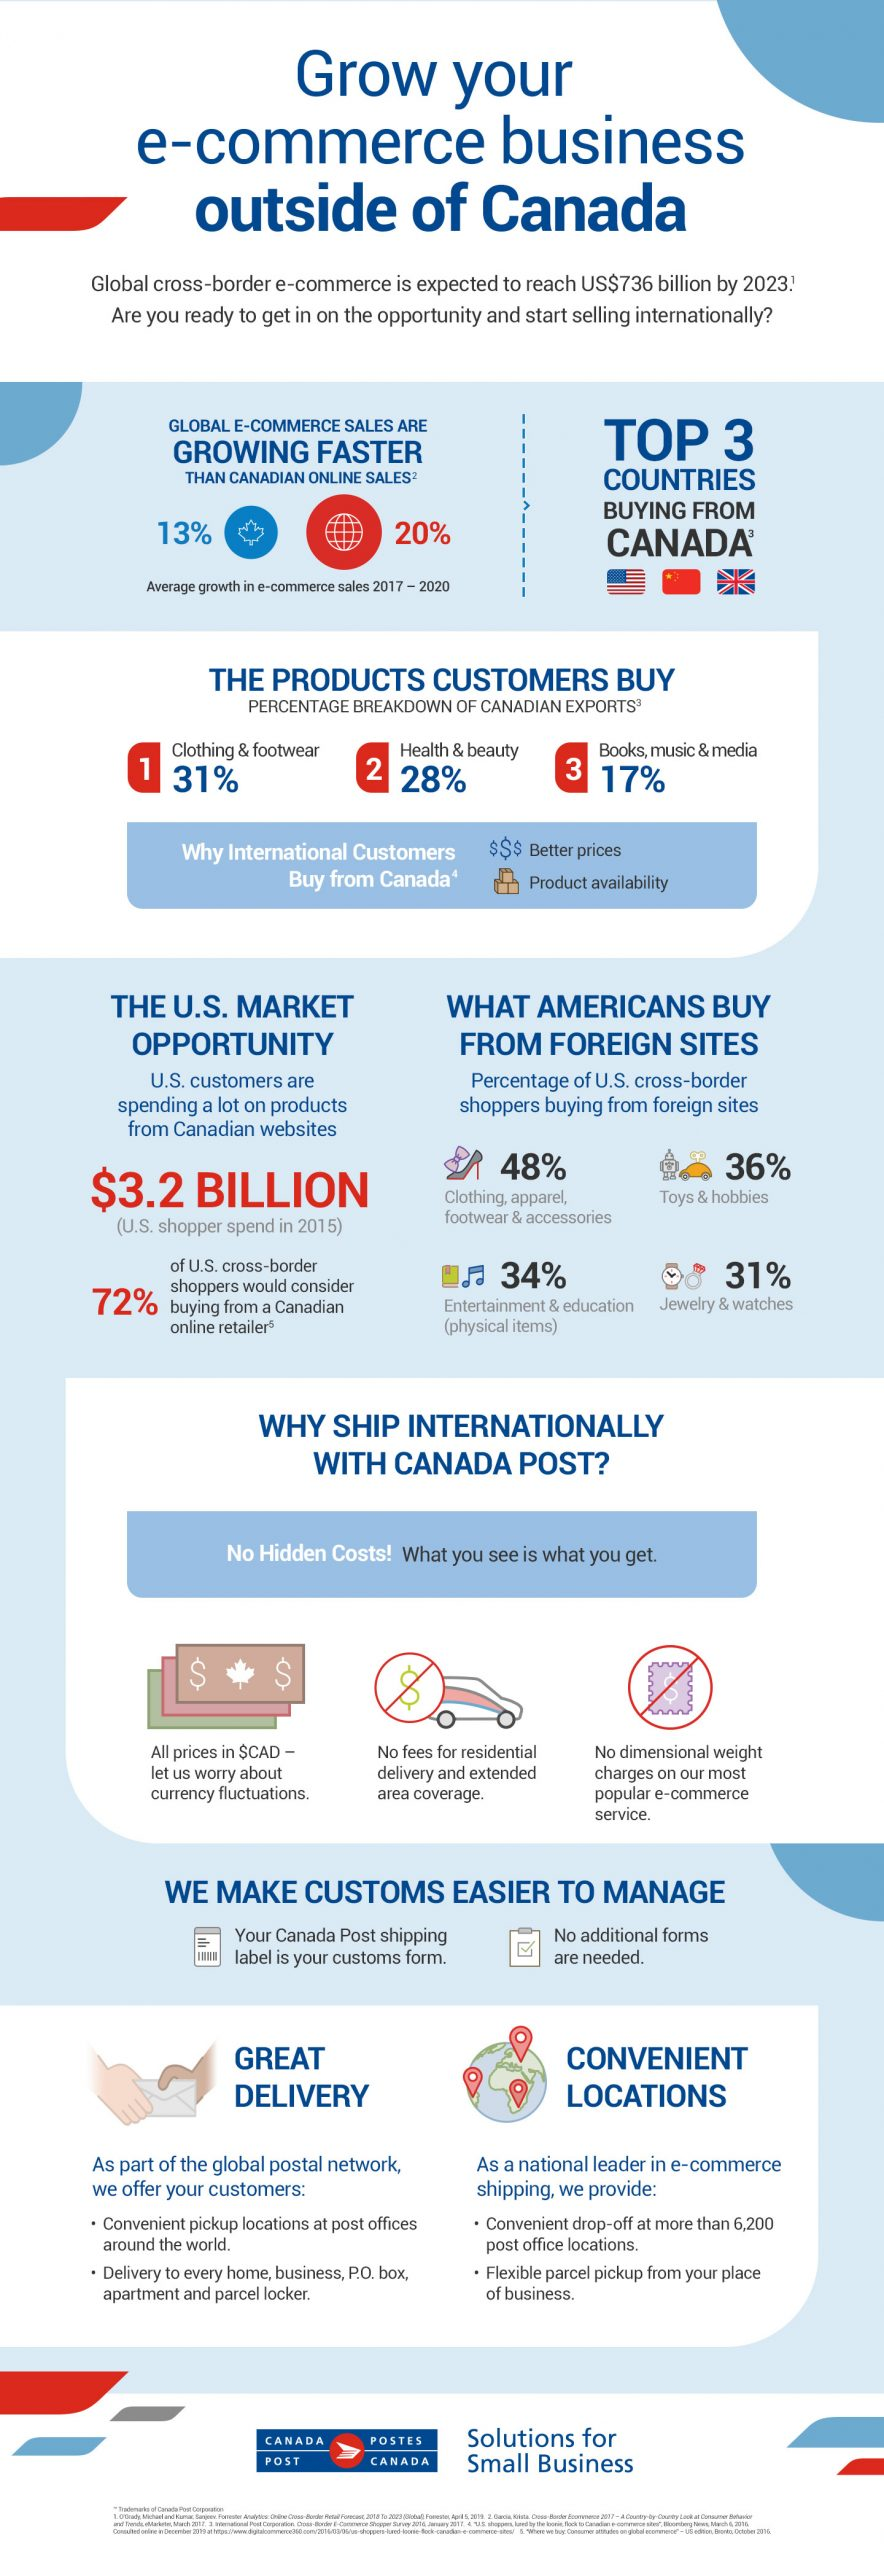 Title: Grow your e-commerce business outside of Canada.   Global cross-border e-commerce is expected to reach US$736 billion by 2023.(Source #1) Global e-commerce sales are growing faster than Canadian online sales: 20 per cent versus 13 per cent average growth between 2017 and 2020.(Source #2)  The top three countries buying online from Canada are the U.S., China and the United Kingdom.(Source #3)  31 per cent of Canadian exports are clothing and footwear; 28 per cent are health and beauty products; and 17 per cent are books, music and media.(Source #3)  International consumers buy from Canada because we have better prices and product availability.(Source #4)  U.S. customers spent $3.2 billion on Canadian websites in 2015. 72 per cent of U.S. cross-border shoppers would consider buying from a Canadian online retailer.(Source #5)  What Americans buy from foreign sites: 48 per cent buy clothing, apparel, footwear and accessories; 36 per cent buy toys and hobby supplies; 34 per cent buy entertainment and education (physical items); and 31 per cent buy jewelry and watches.   Reasons why you should ship internationally with Canada Post: No hidden costs! What you see is what you get. All prices are in $CAD, there are no fees for residential delivery and extended area coverage, and there are no dimensional weight charges on our most popular e-commerce service.   Canada Post makes customs easier to manage: Your Canada Post shipping label is your customs form, and no additional forms are needed.   As part of the global postal network, we offer your customers: Convenient pickup at post offices around the world; and delivery to every home, business, P.O. box, apartment and parcel locker. As a national leader in e-commerce shipping, we provide: Convenient drop-off at more than 6,200 post office locations; and flexible parcel pickup from your place of business.   Sources: #1: O'Grady, Michael and Kumar, Sanjeev. Forrester Analytics: Online Cross-Border Retail Forecast, 2018 to 